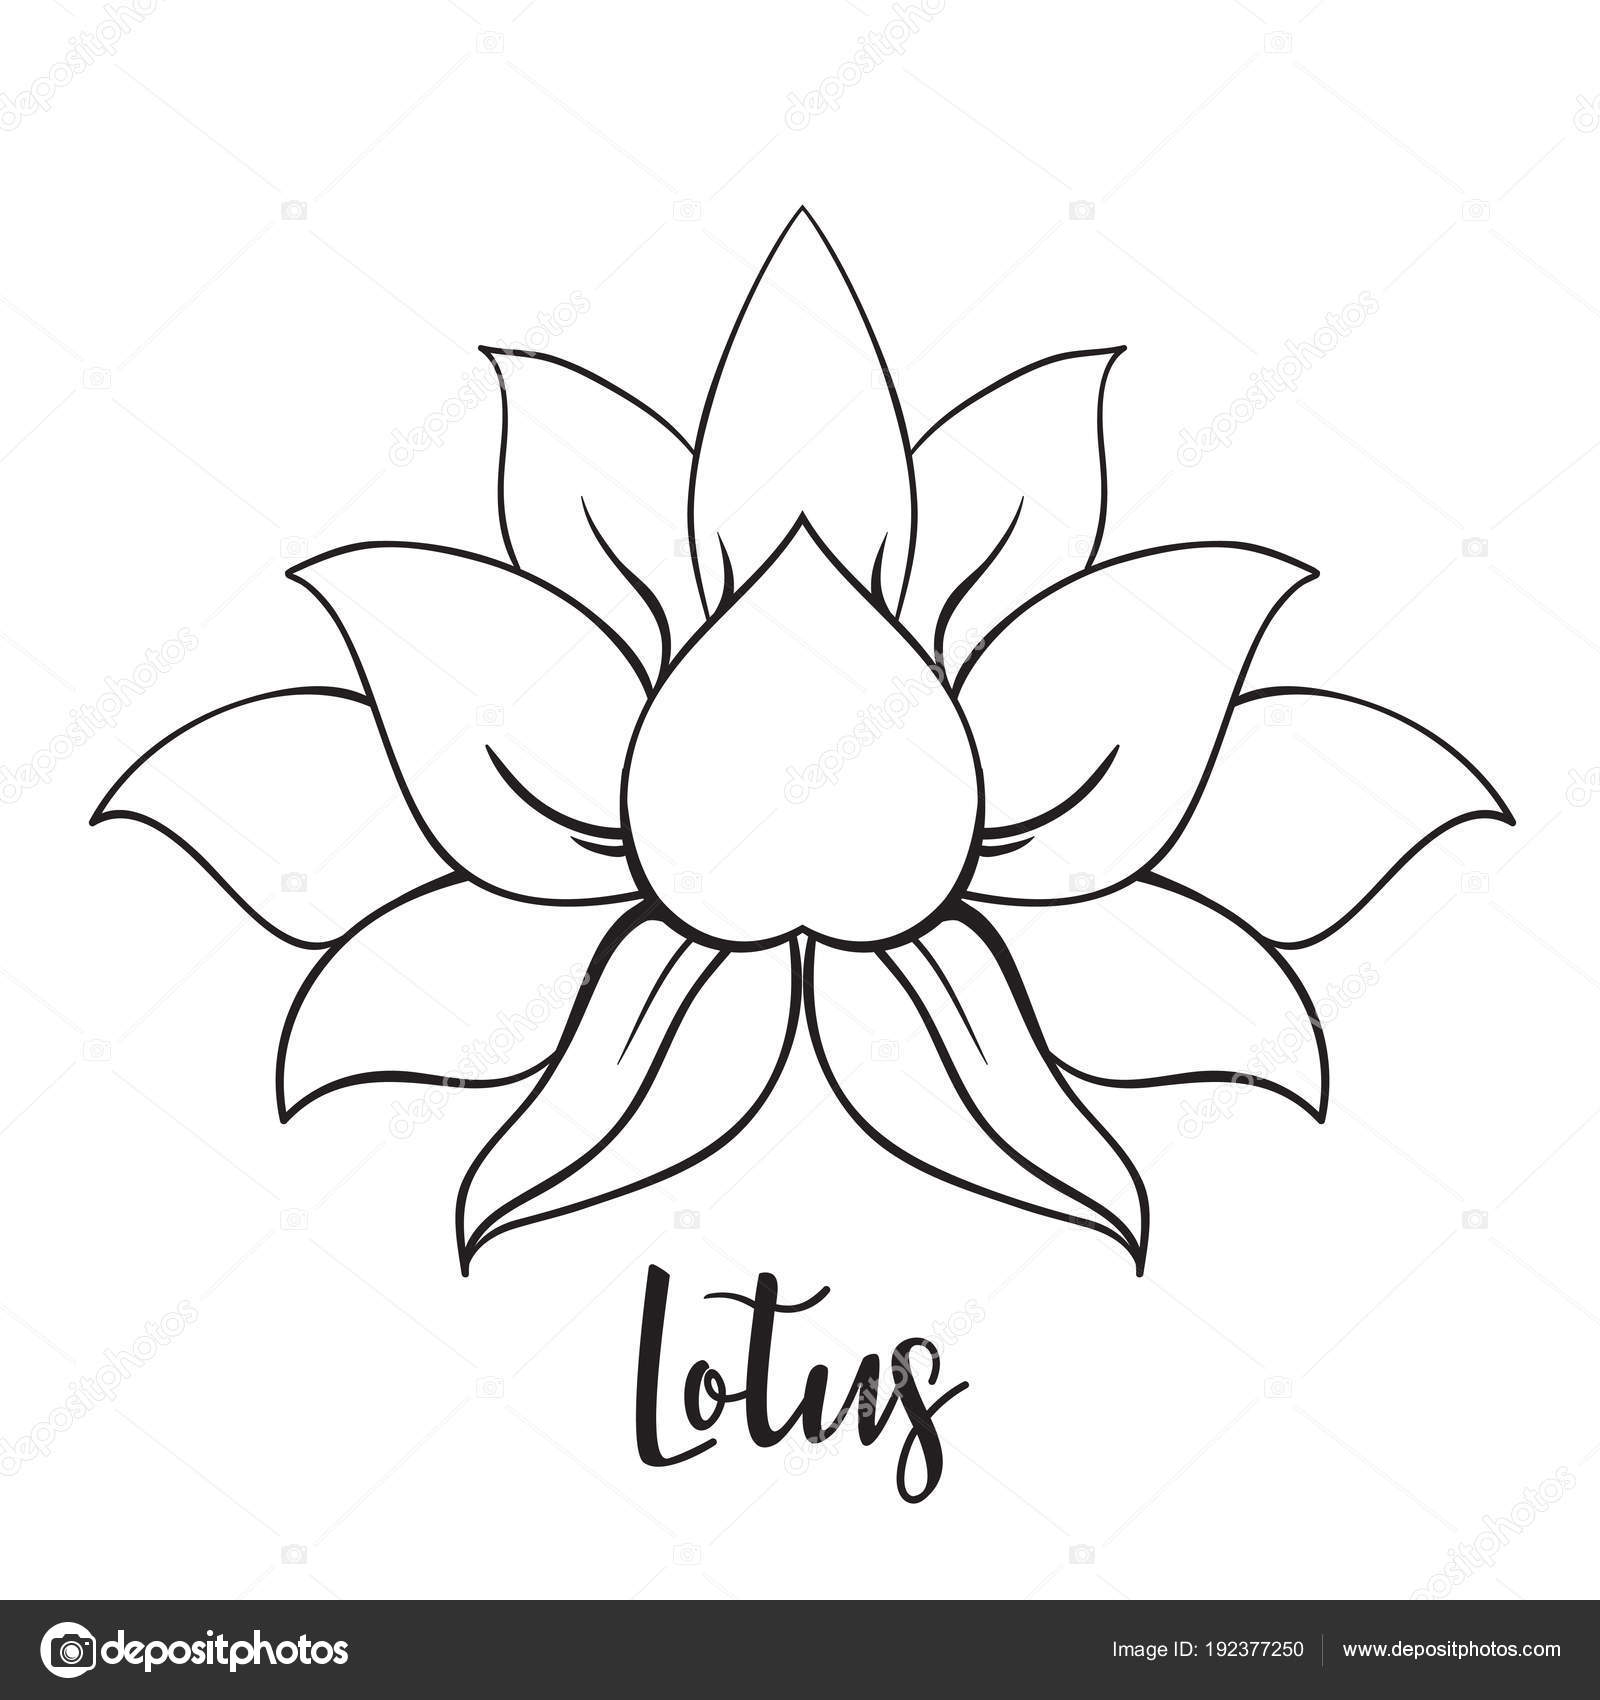 Decorative ornamental lotus flower symbol stock vector vgorbash decorative ornamental lotus flower symbol stock vector izmirmasajfo